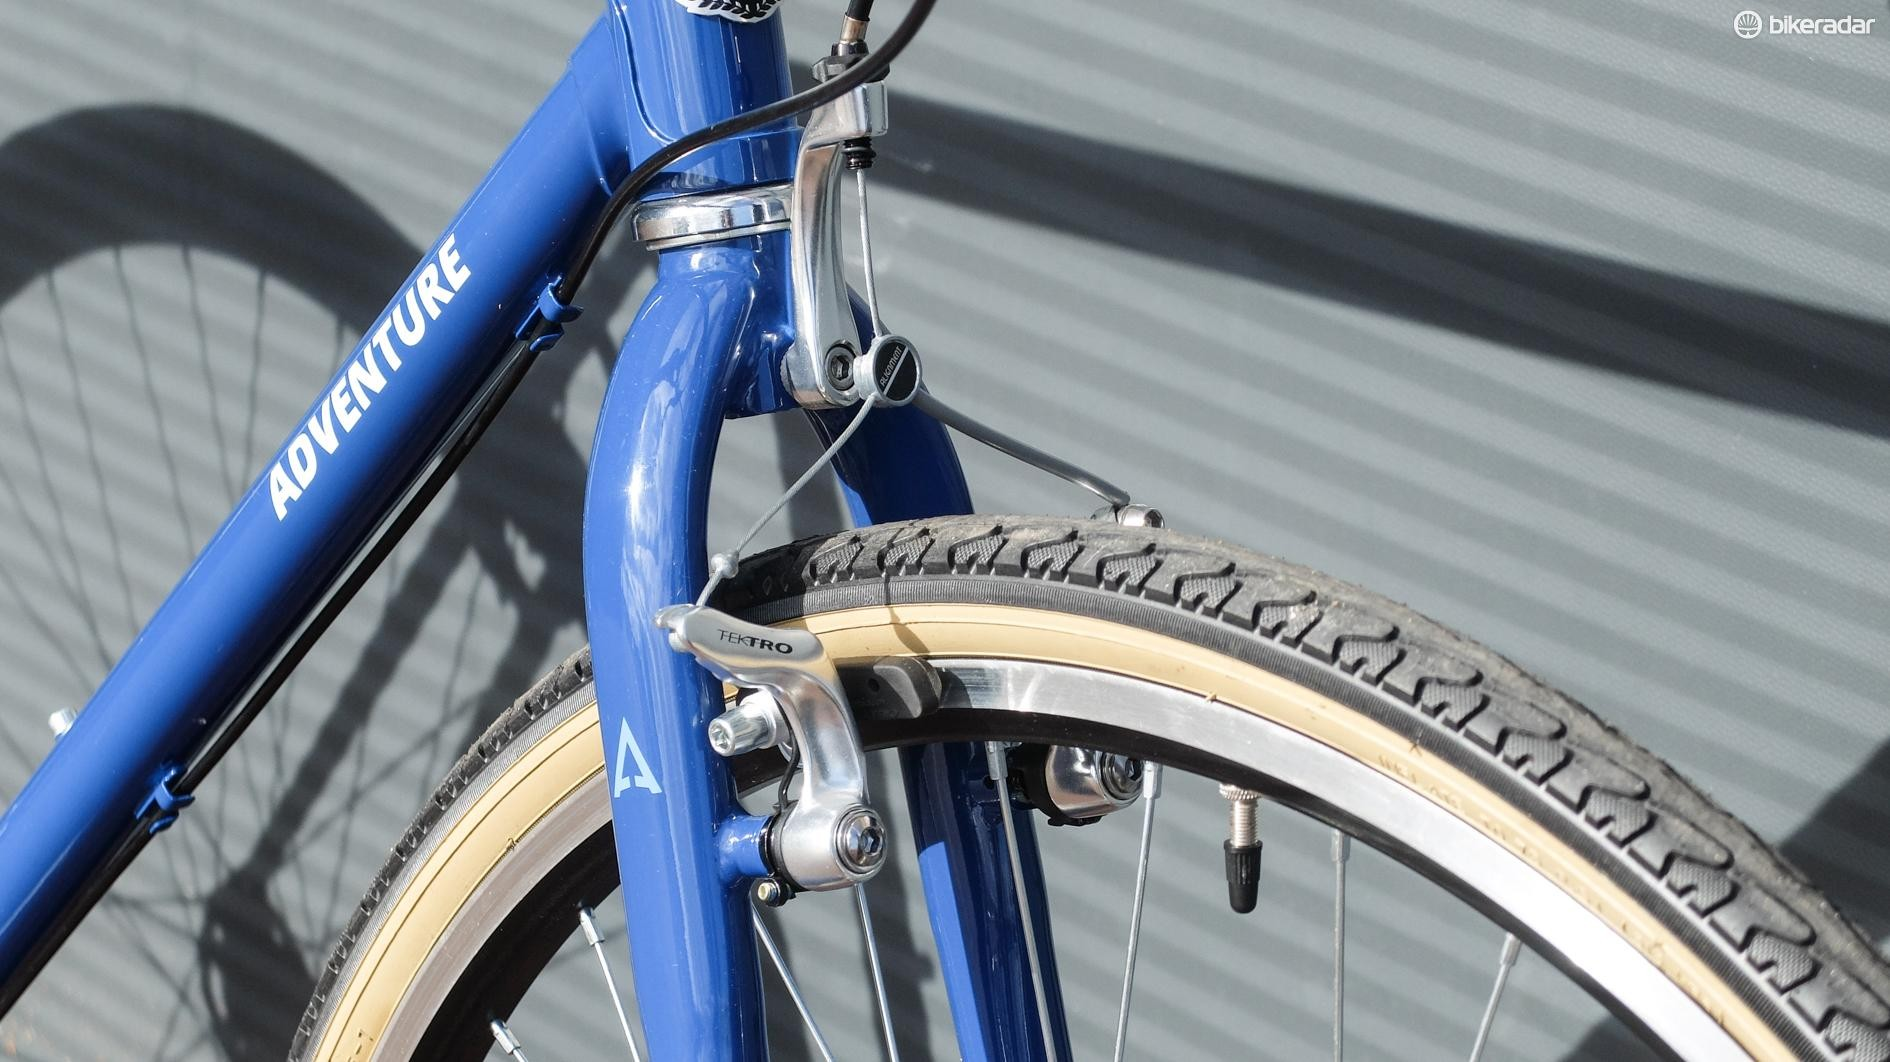 You don't see cantilever brakes that often